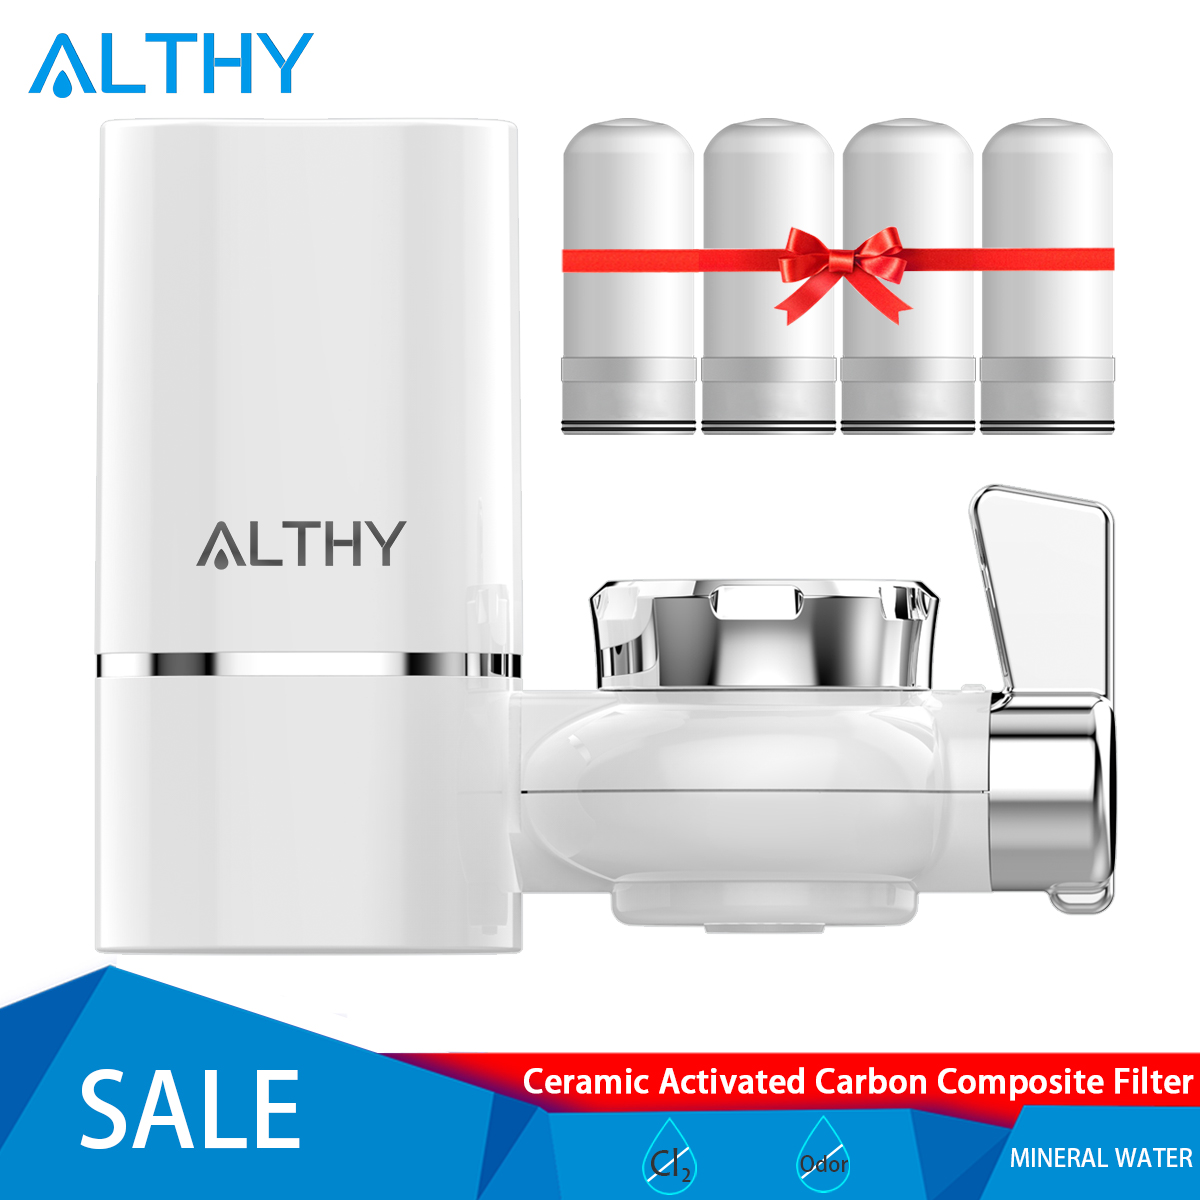 ALTHY Tap Water Filter Purifier Kitchen Faucet Water Purification System - Retain Alkaline Minerals - Remove Odor Chlorine